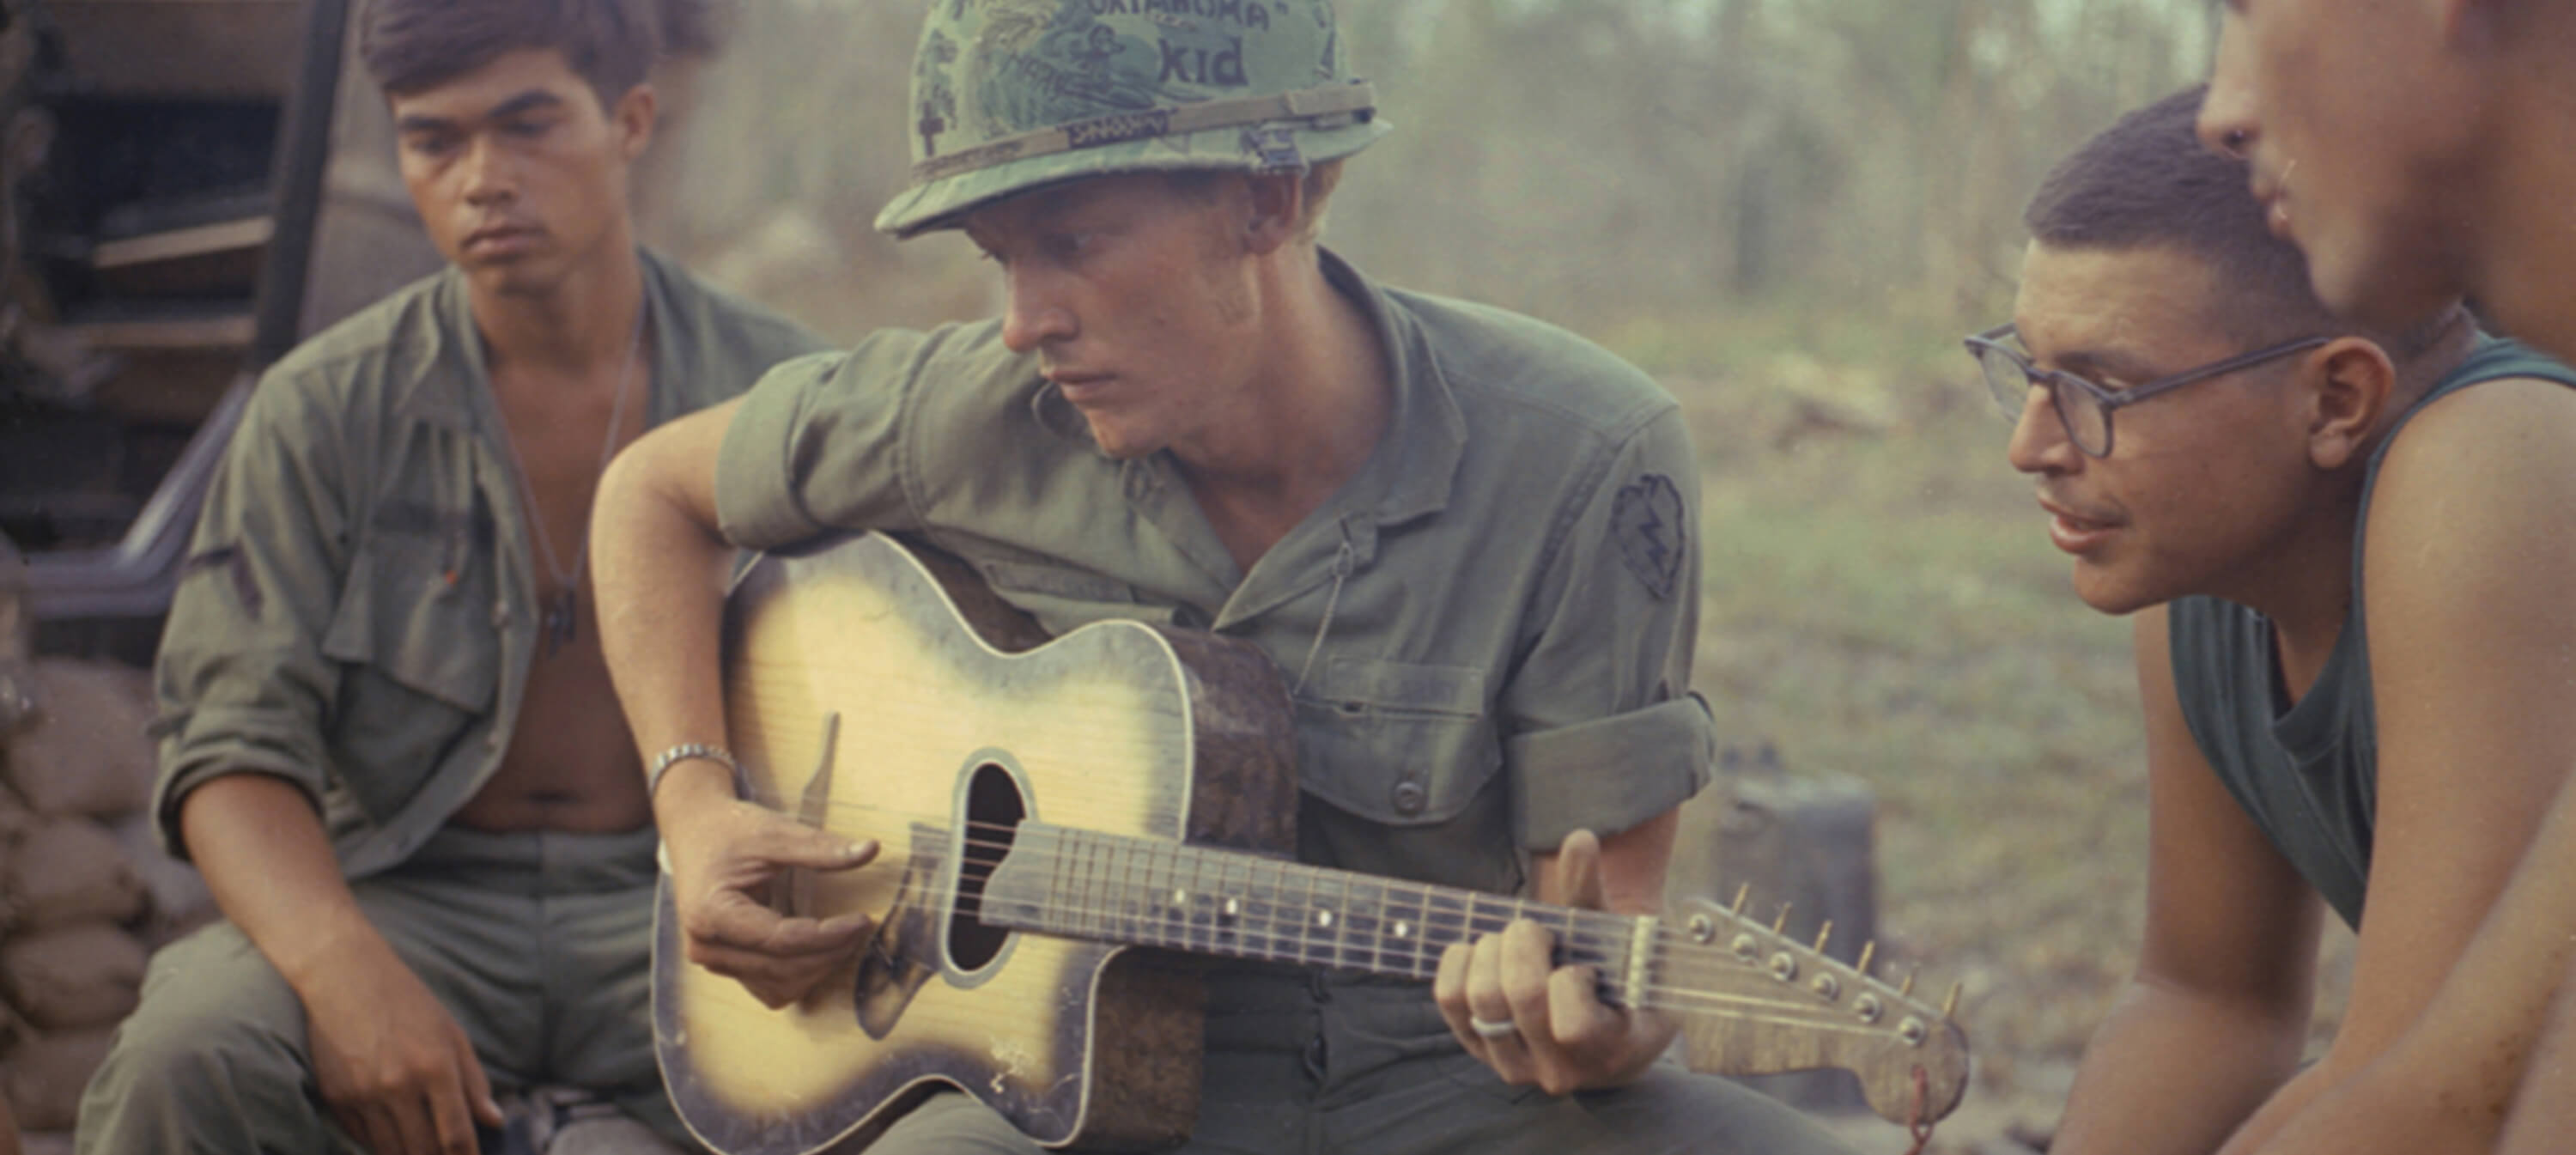 Vietnam soldiers listen to soldier playing guitar in camp.